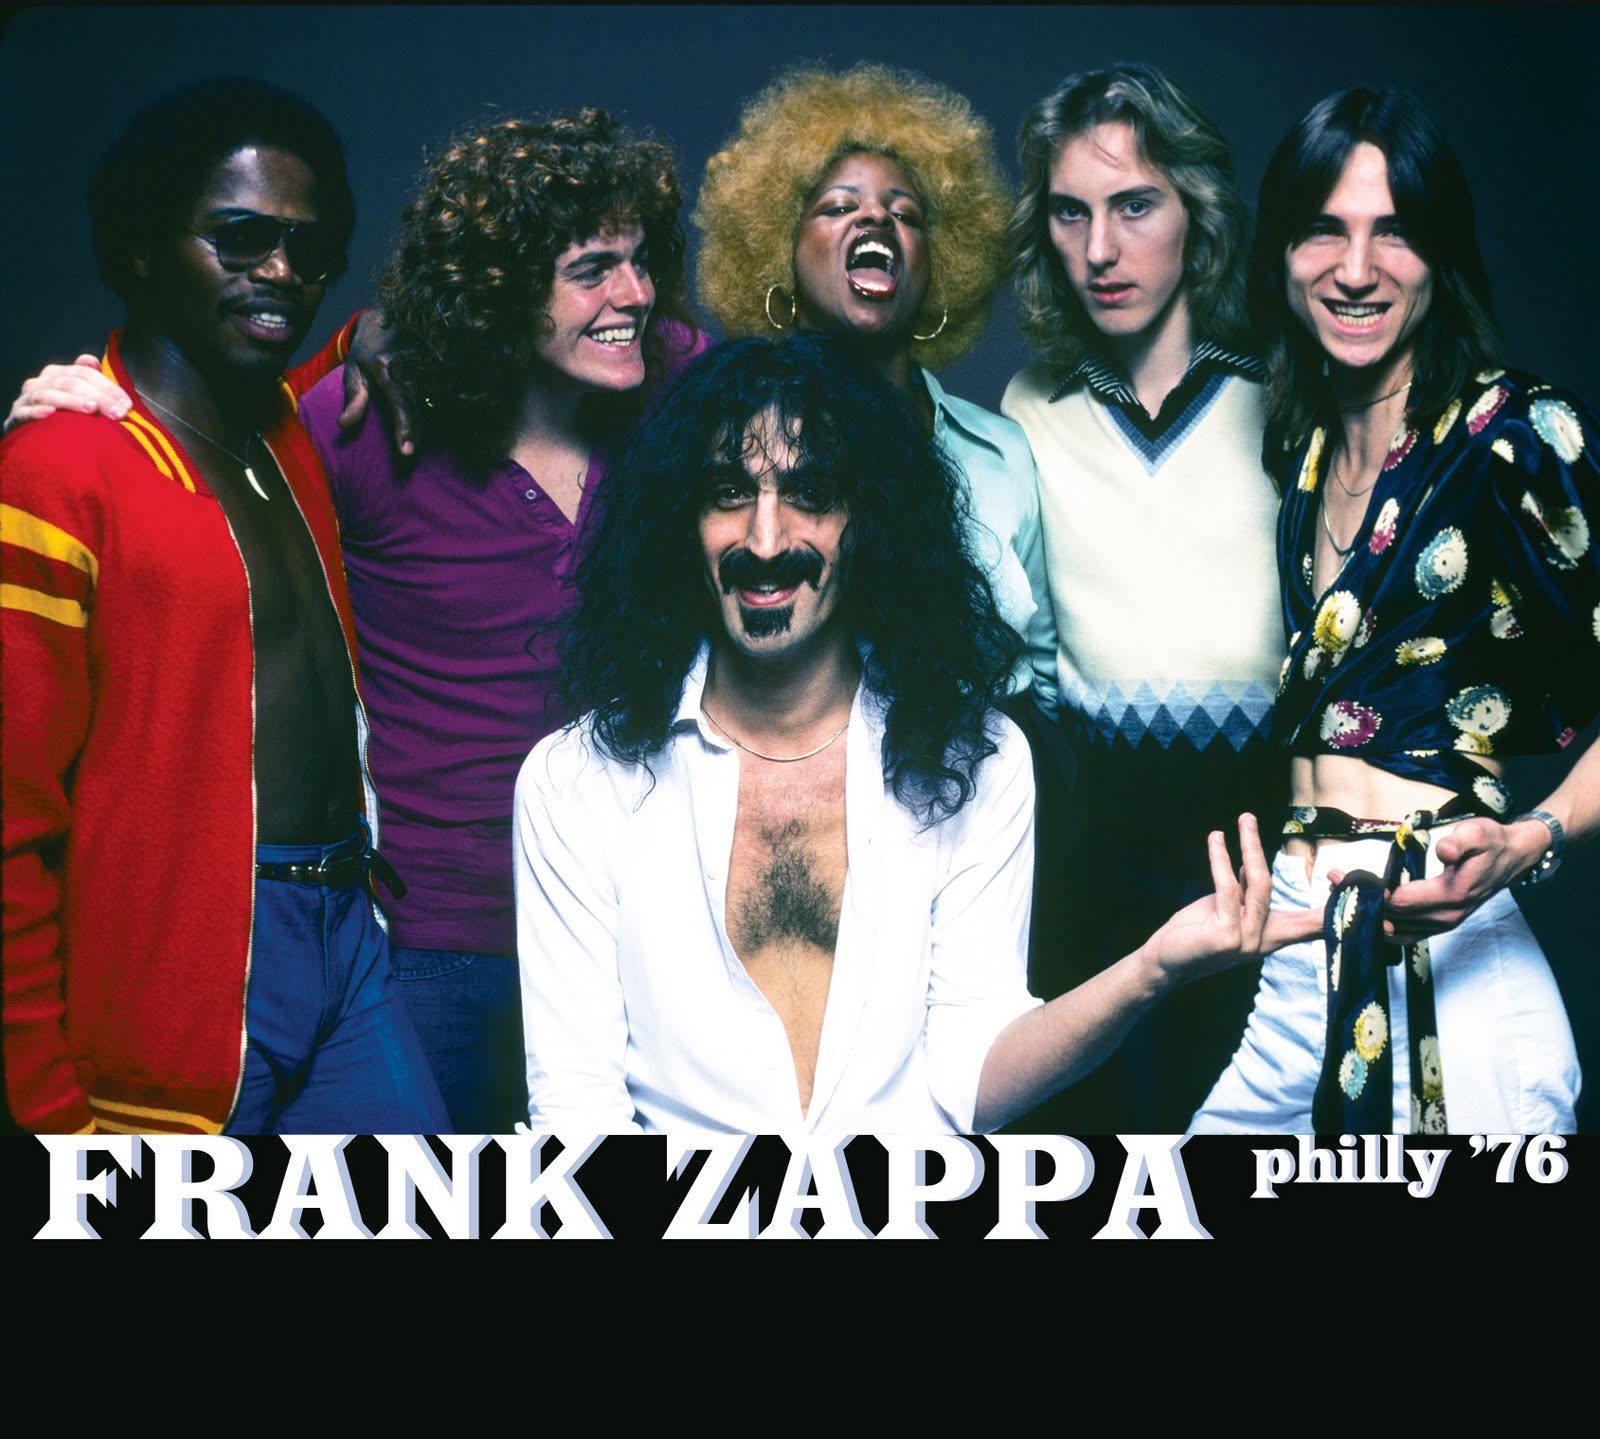 Frank Zappa Philly 76 Bootleg The Savage Saints